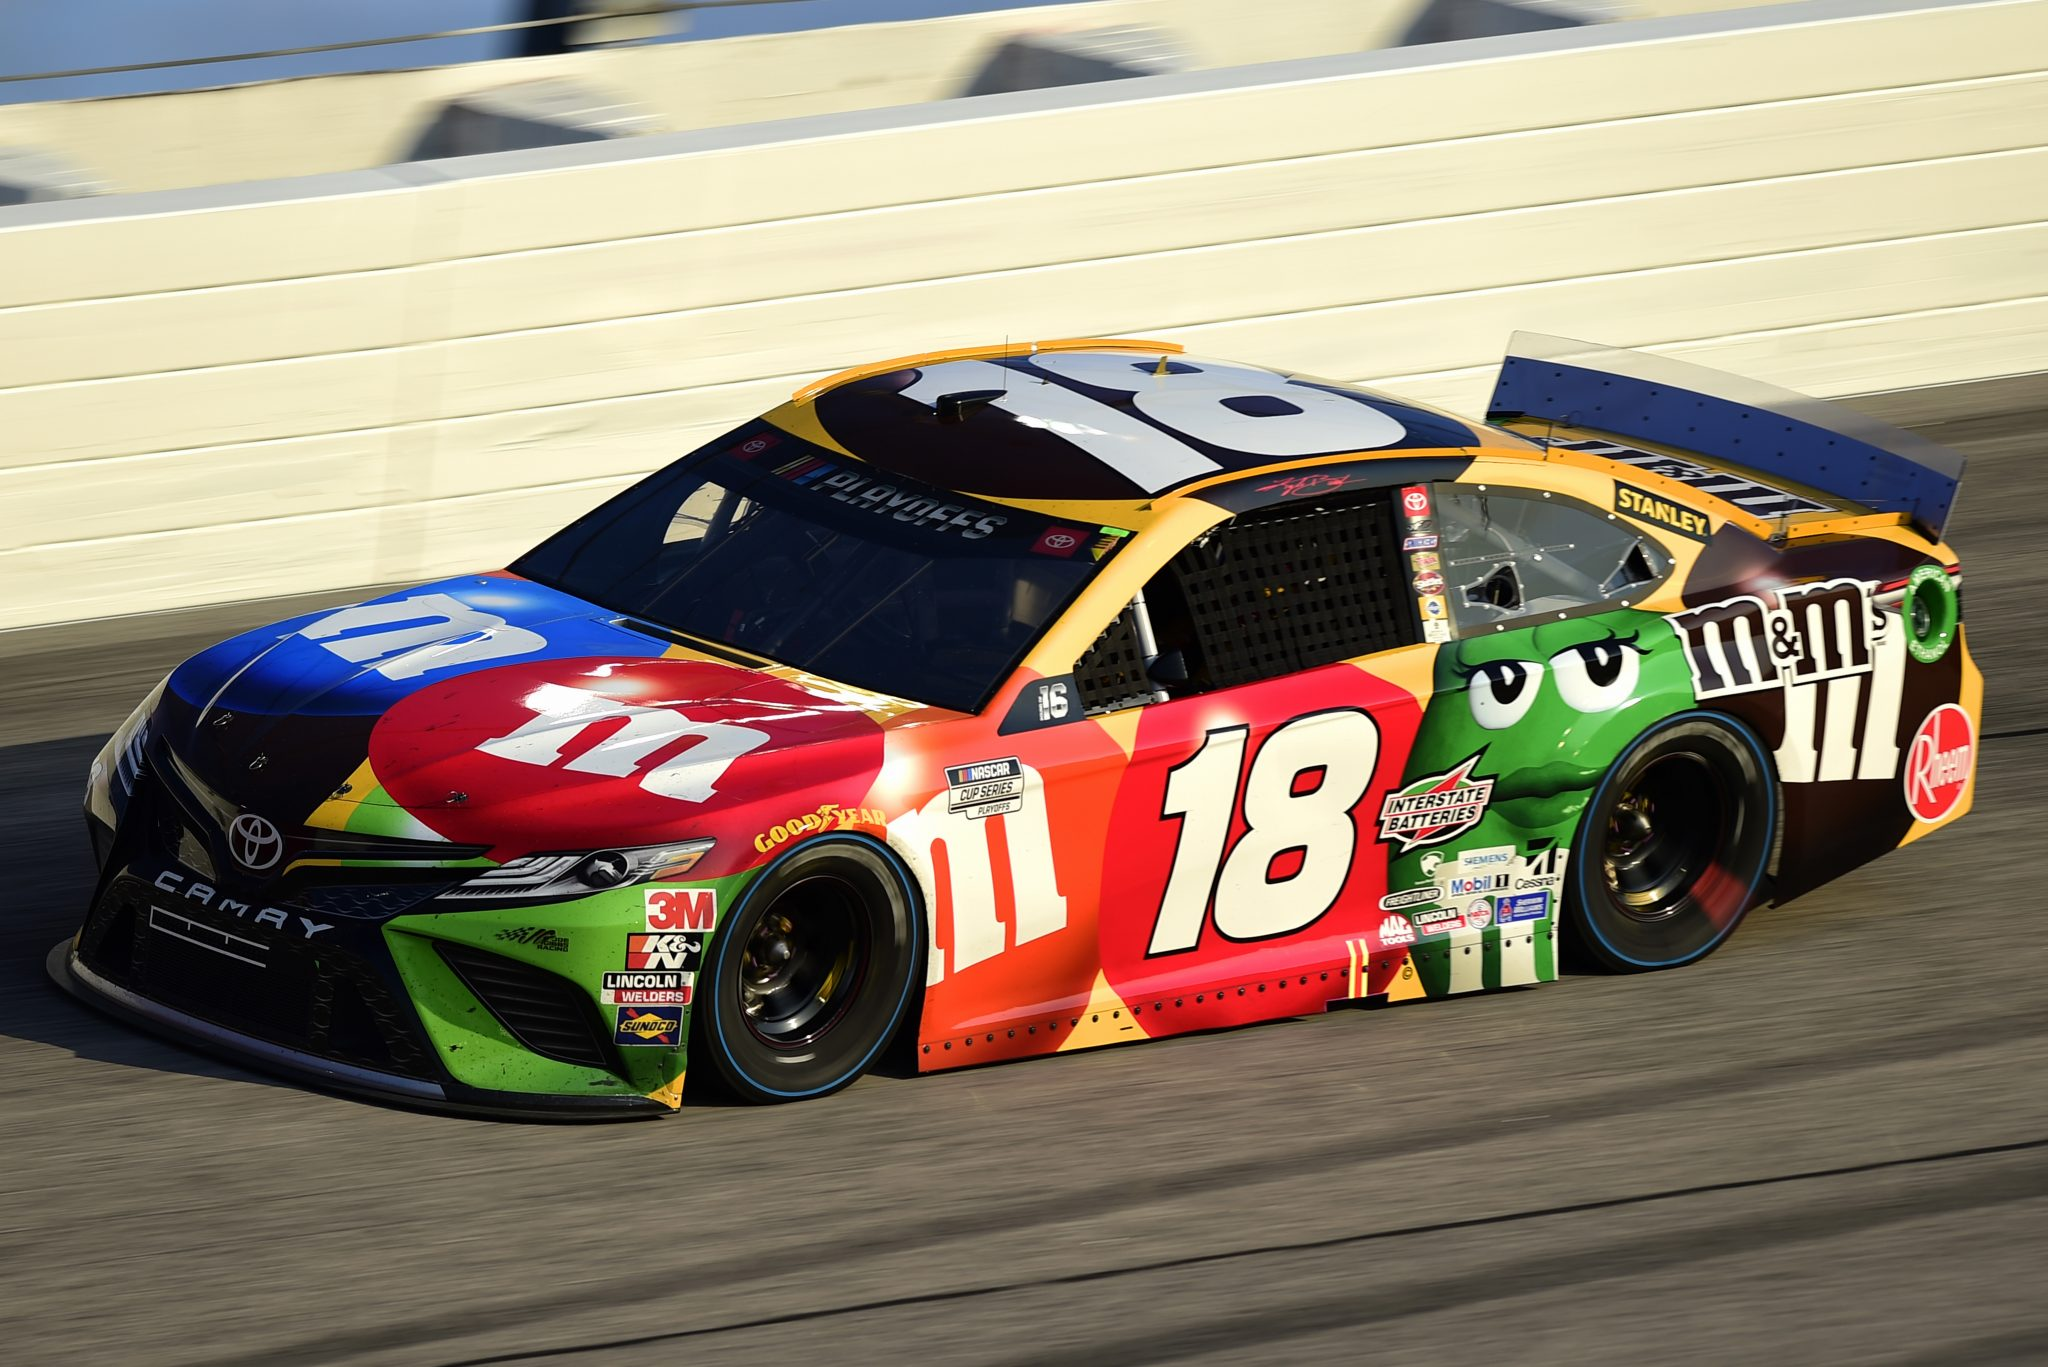 DARLINGTON, SOUTH CAROLINA - SEPTEMBER 06: Kyle Busch, driver of the #18 M&M's Toyota, drives during the NASCAR Cup Series Cook Out Southern 500 at Darlington Raceway on September 06, 2020 in Darlington, South Carolina. (Photo by Jared C. Tilton/Getty Images) | Getty Images